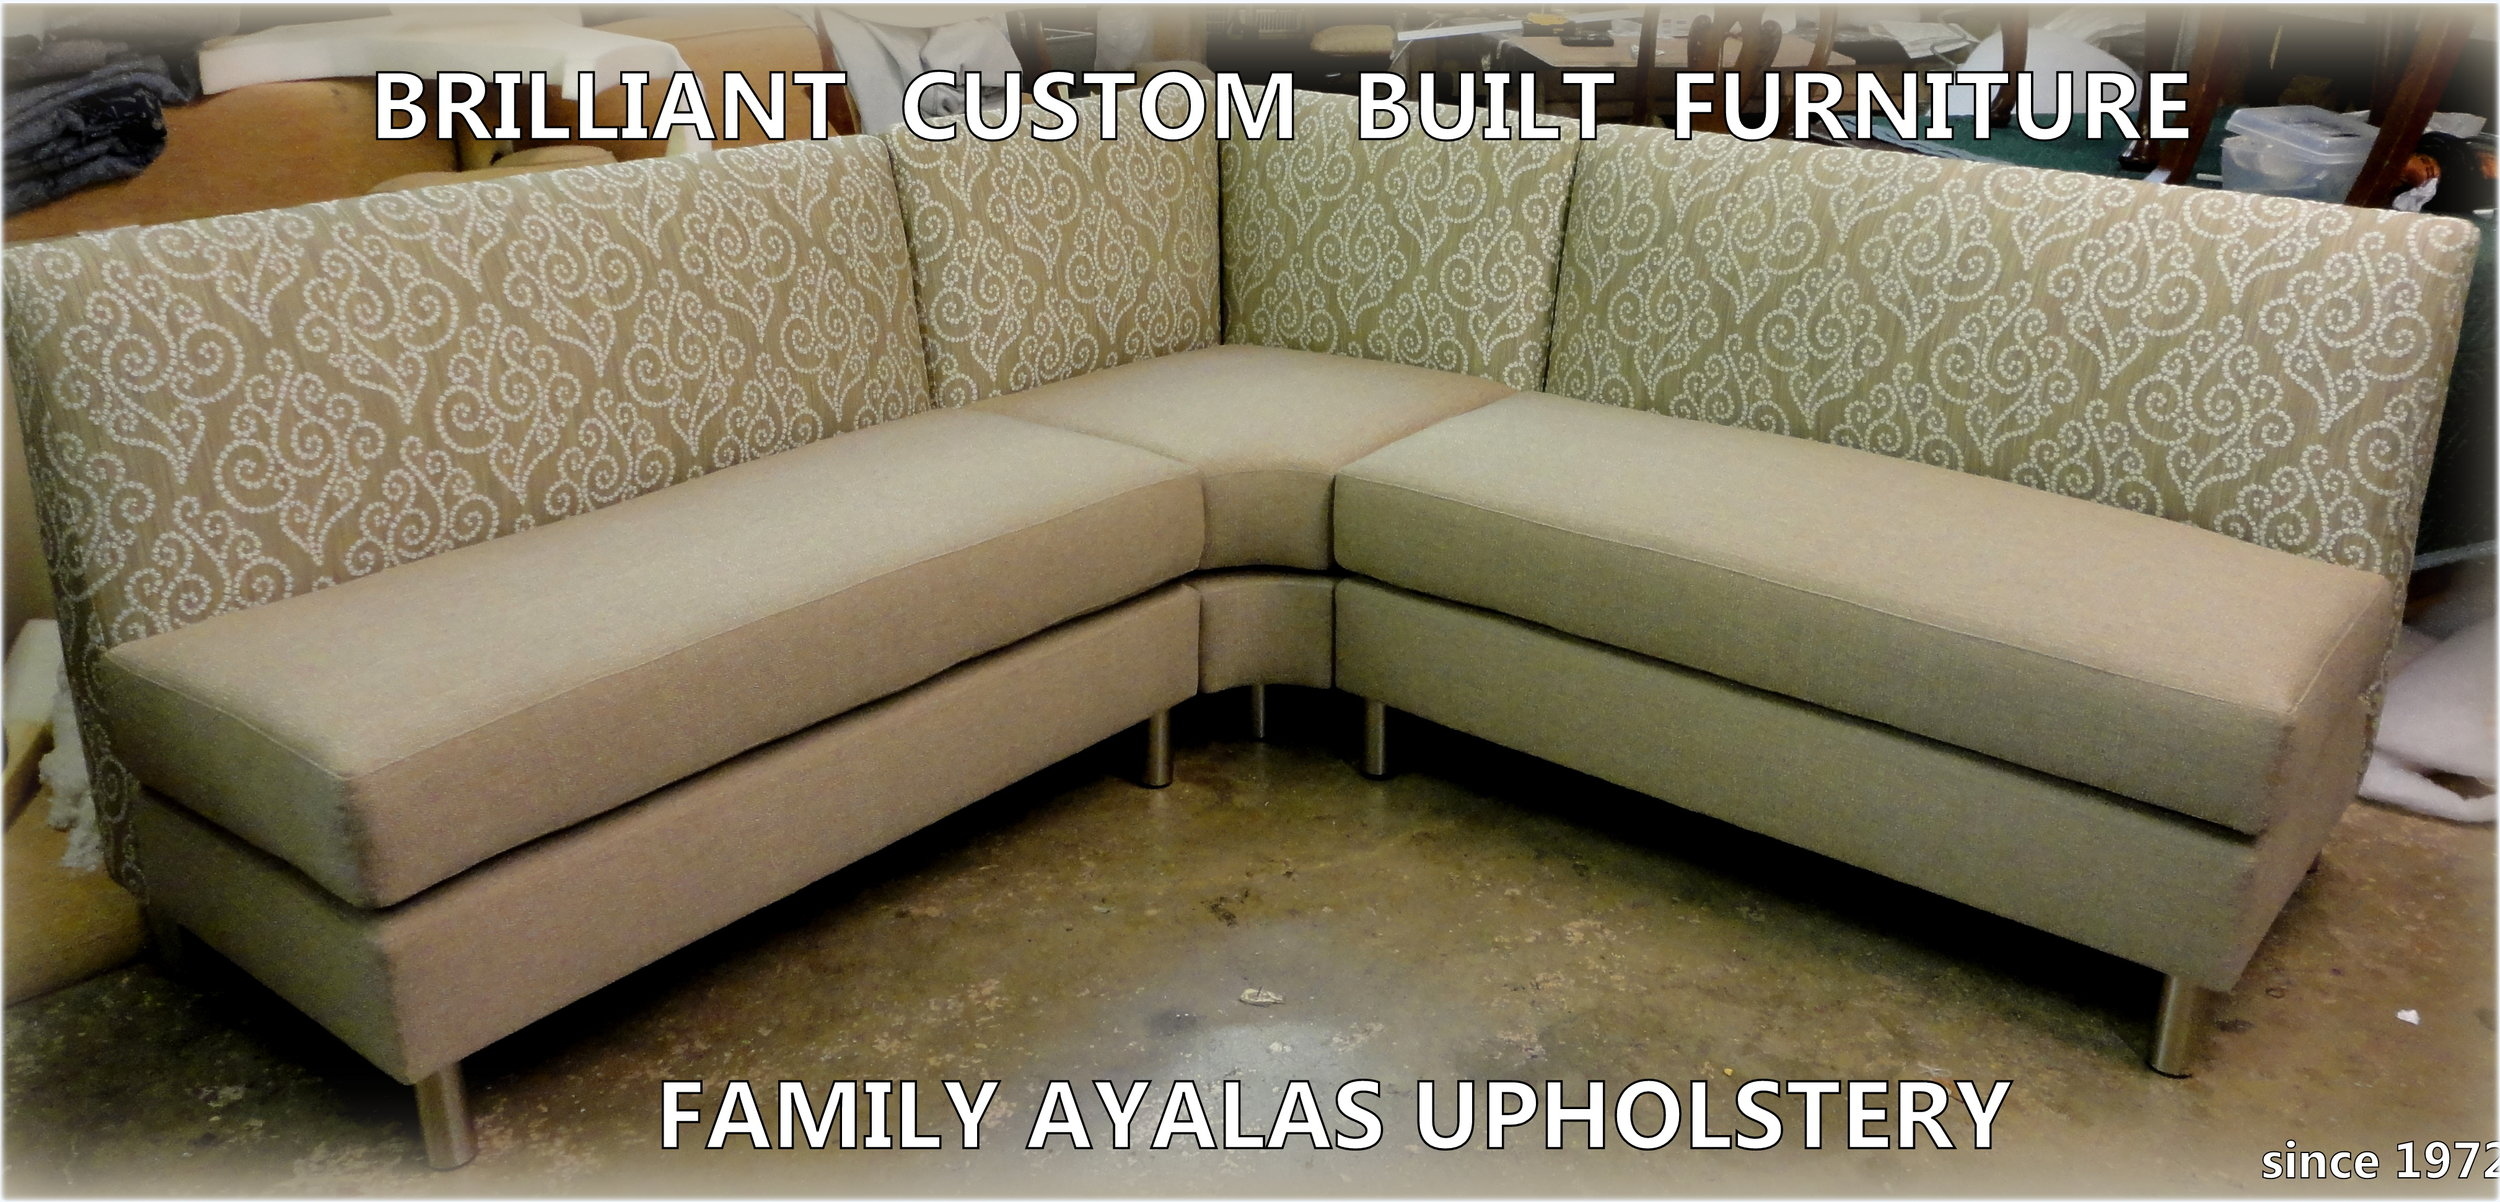 0. brilliant custom built furniture.jpg